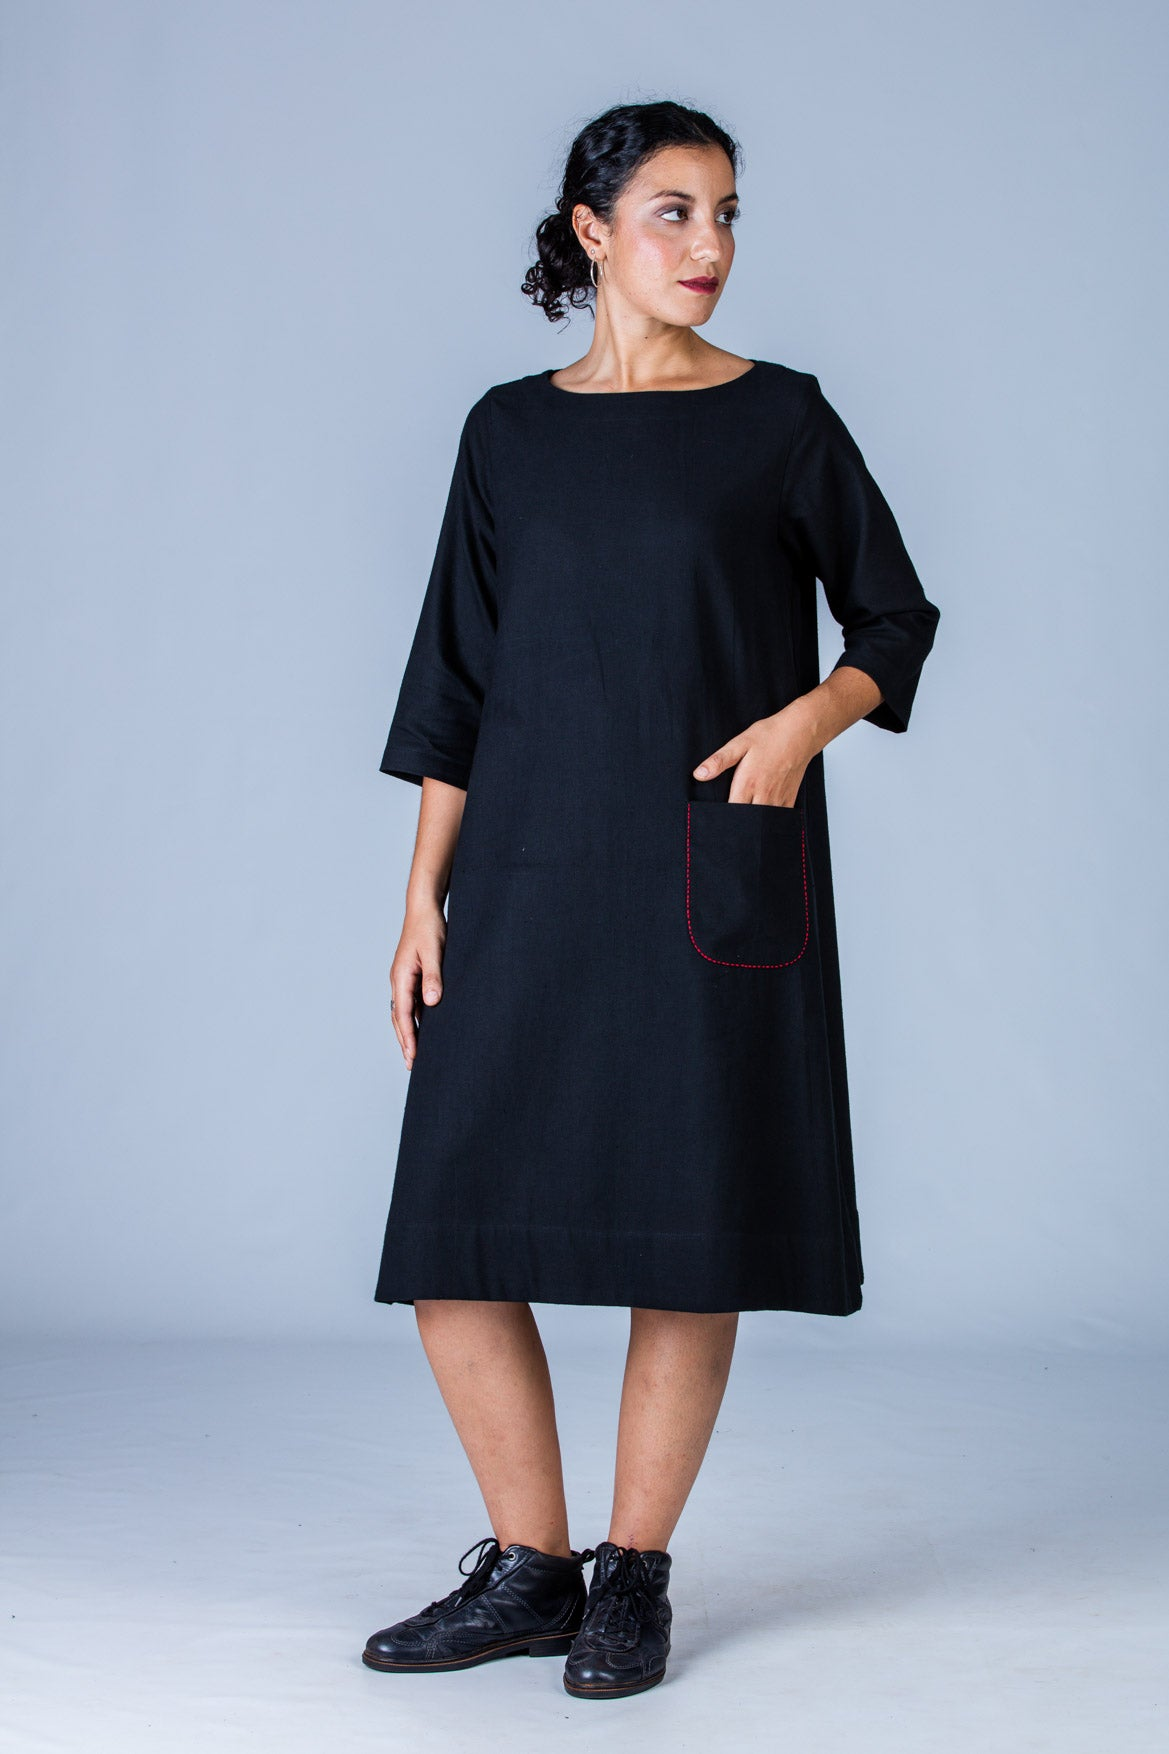 Black Khadi Dress - PARINA - Upasana Design Studio